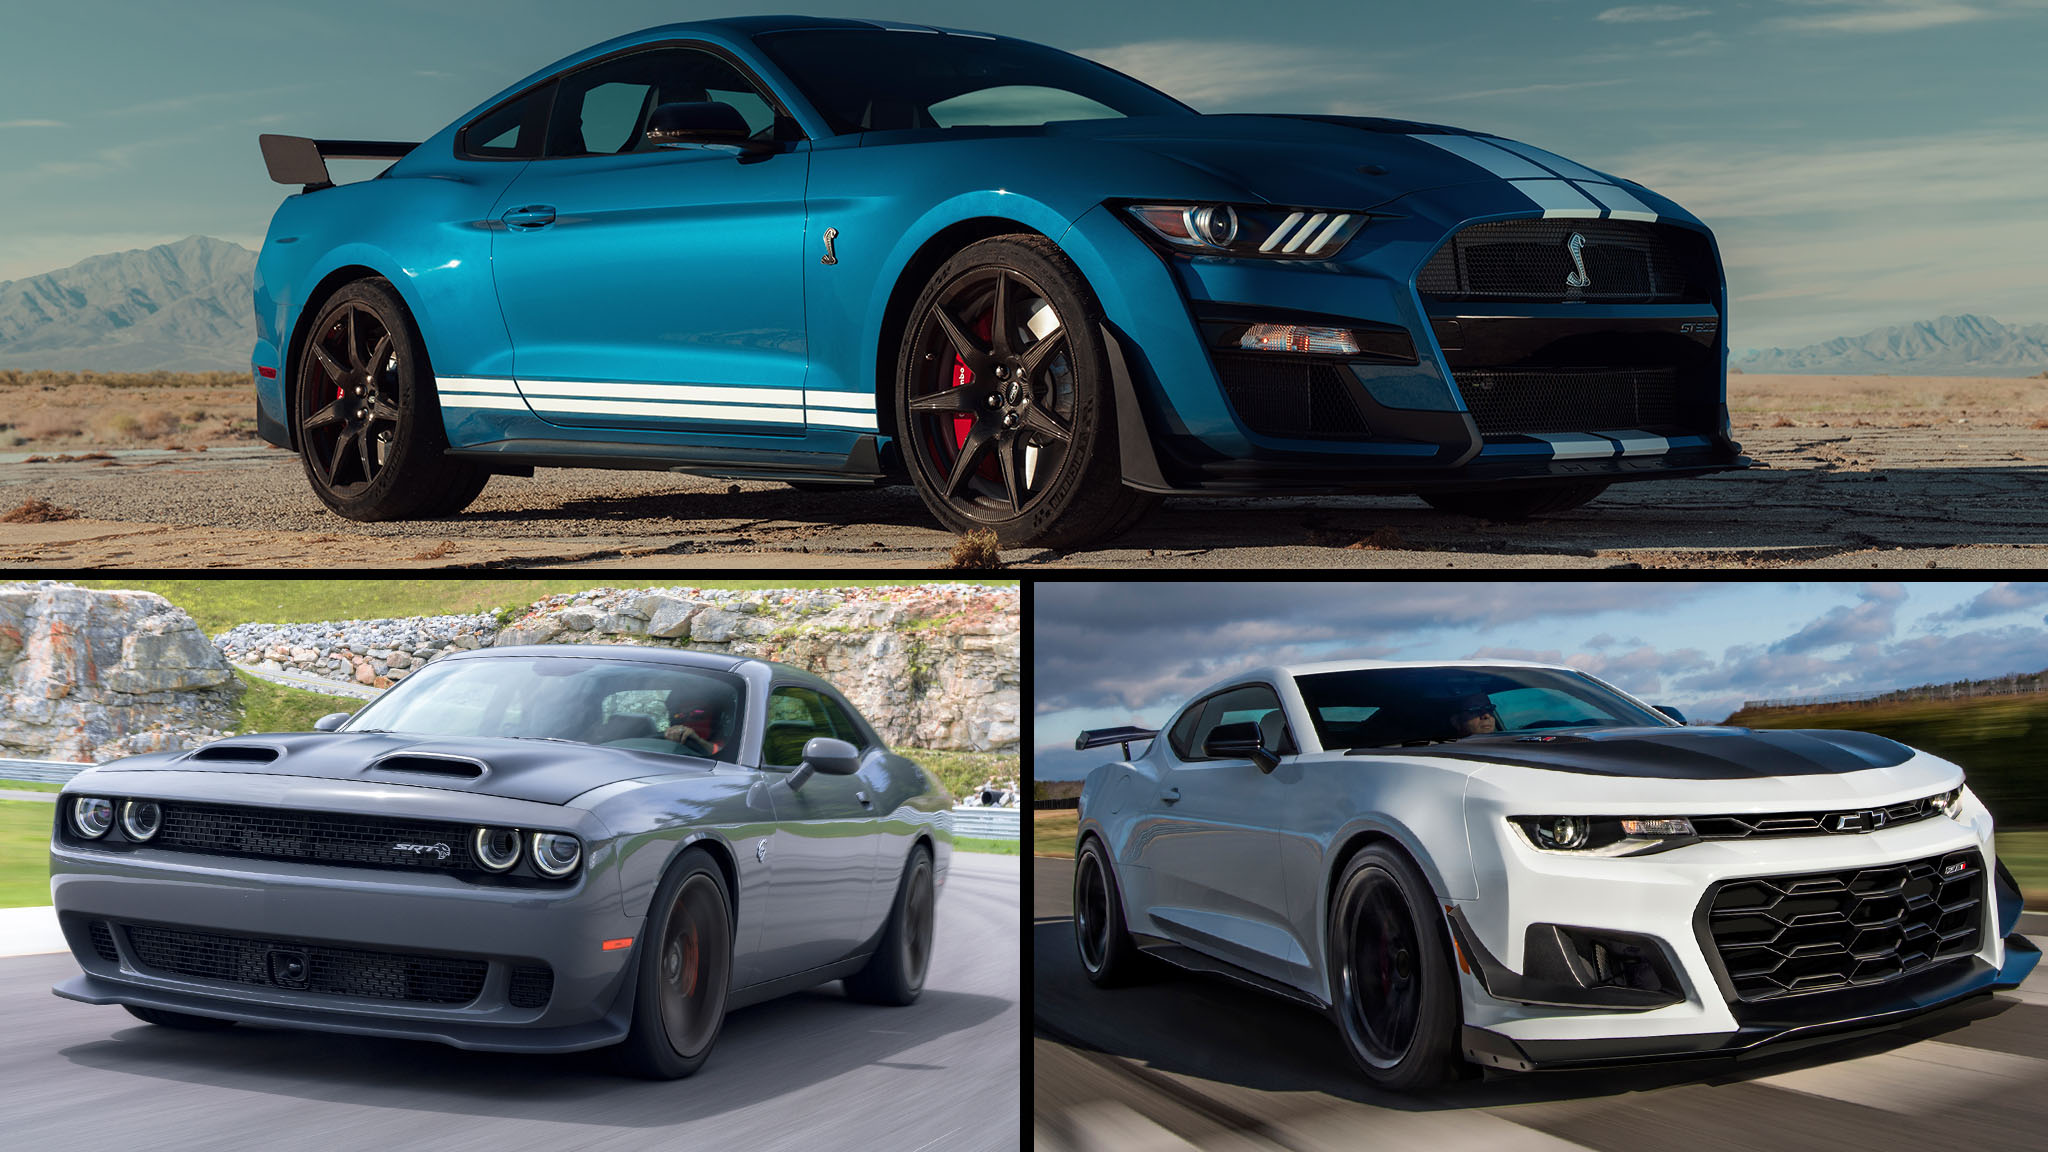 2020 Ford Mustang Shelby GT500 Vs Dodge Challenger SRT Hellcat And Chevrolet Camaro ZL1 1